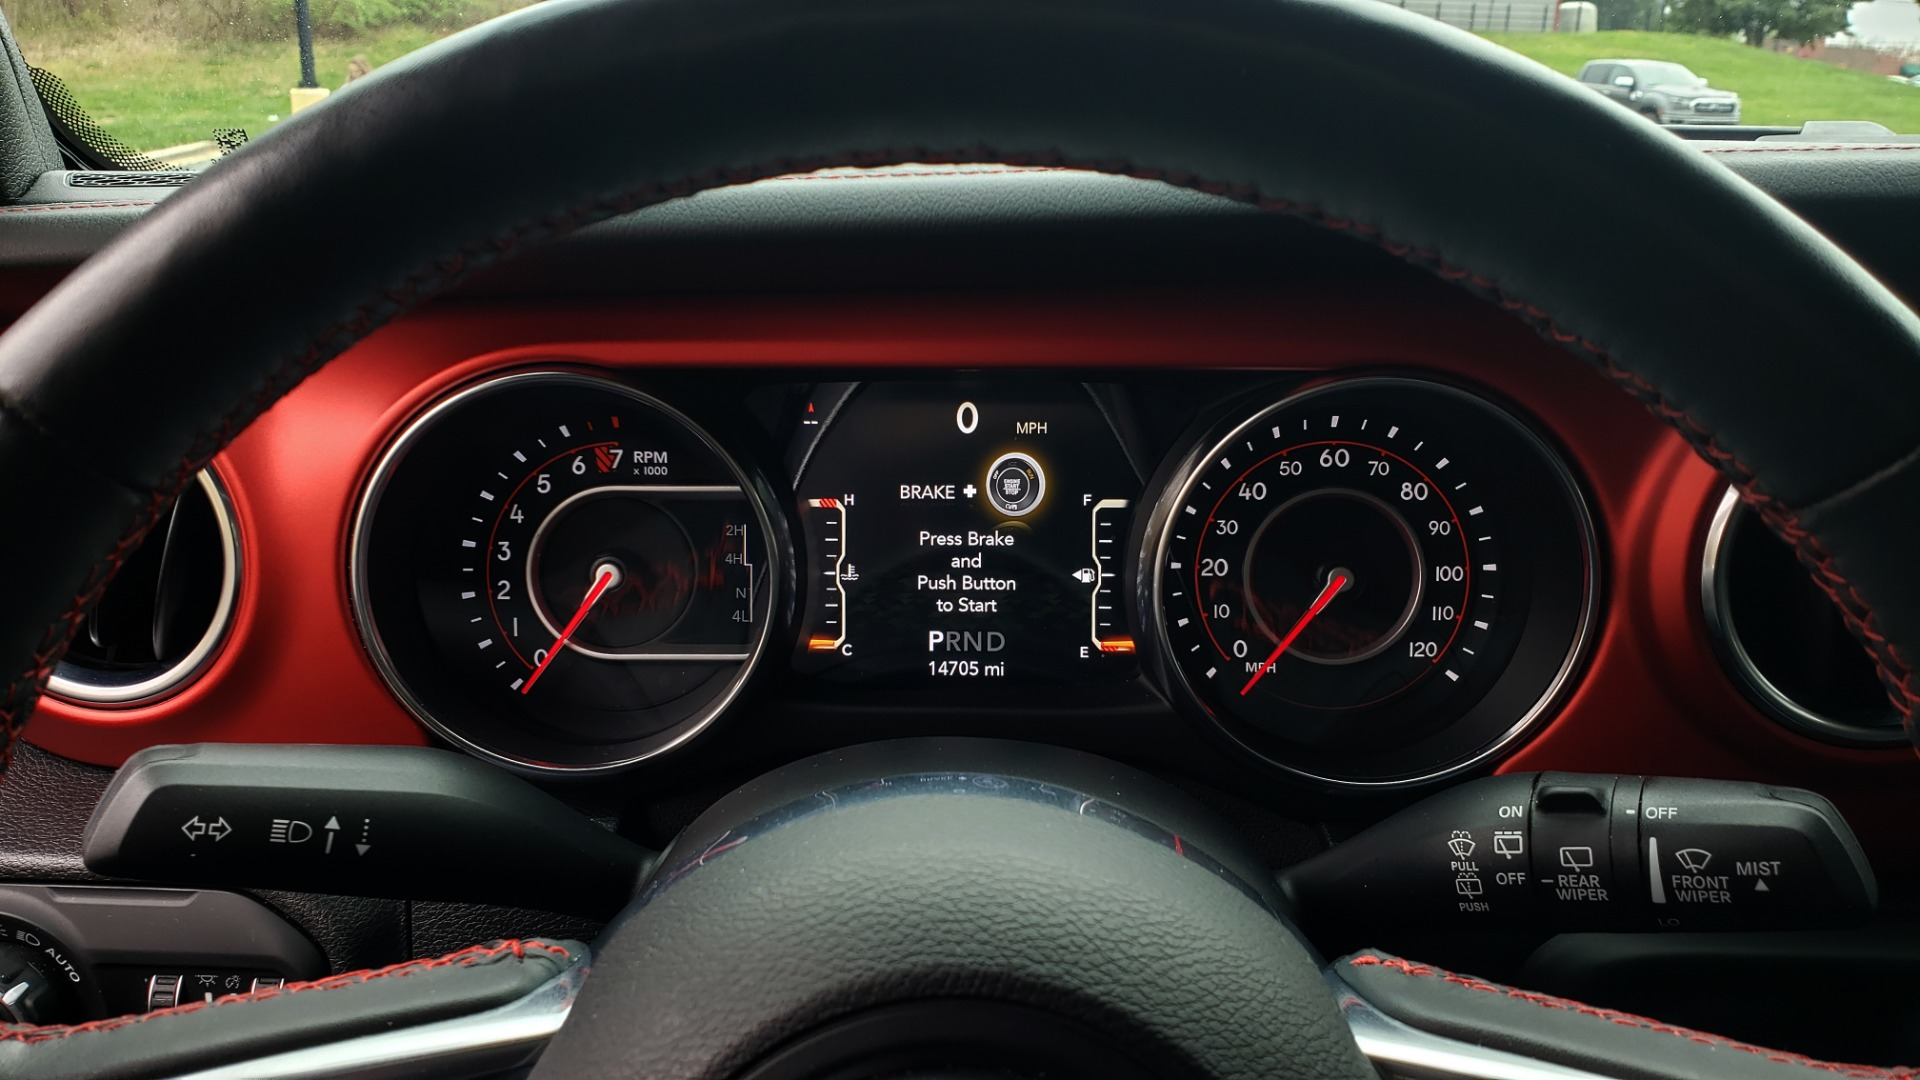 Used 2019 Jeep WRANGLER UNLIMITED RUBICON 4WD / V6 / 8-SPD AUTO / NAV / PWR TOP / REARVIEW for sale Sold at Formula Imports in Charlotte NC 28227 59